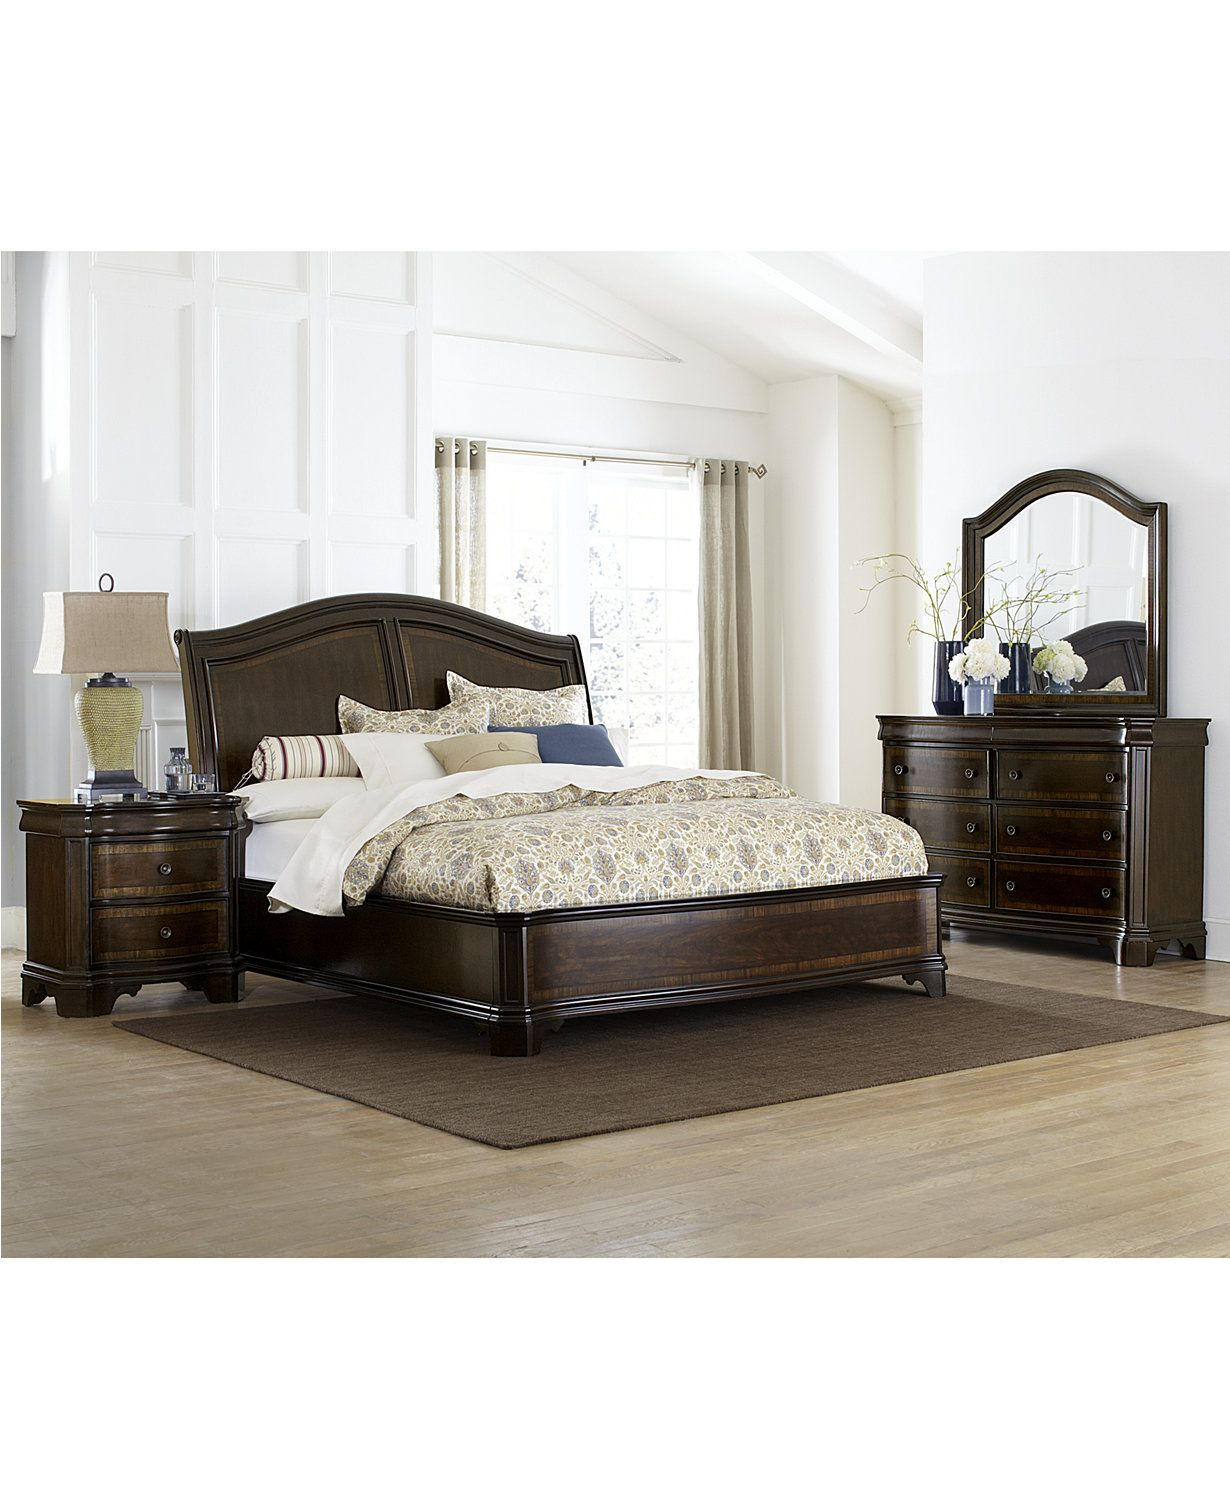 Delmont Bedroom Furniture Collection Only At Macy S Furniture